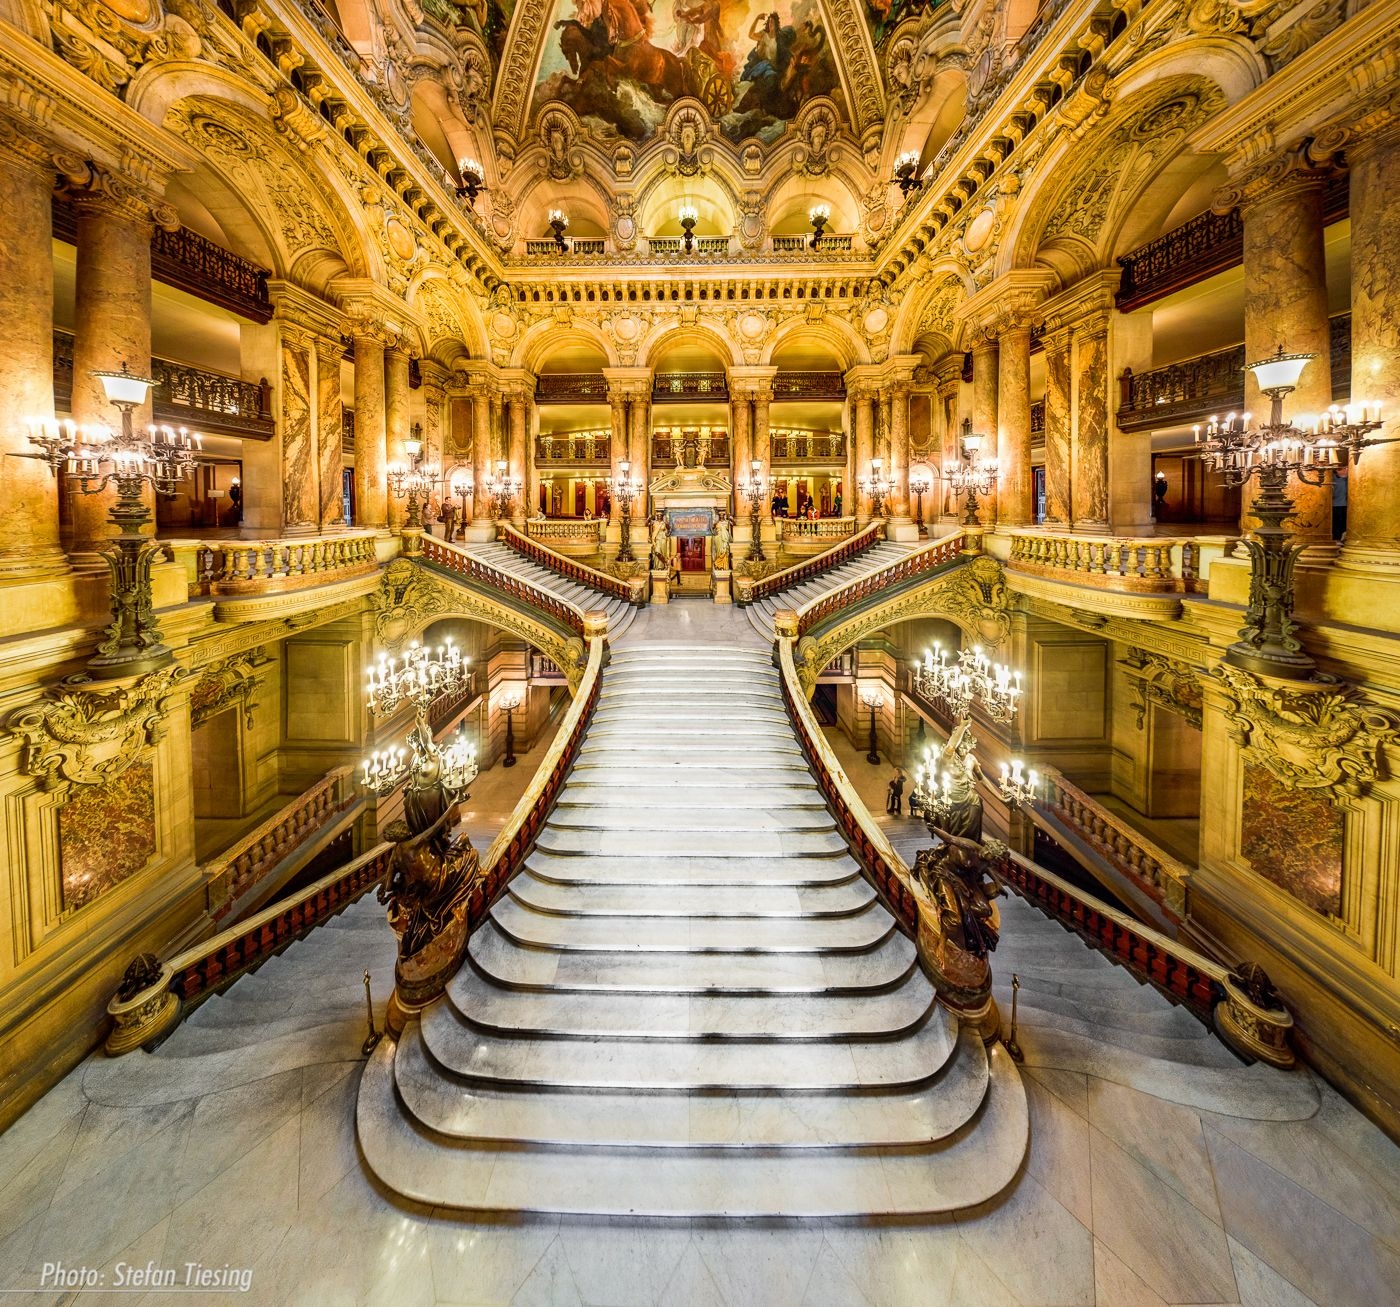 Staircases The Grand Staircase At The Palais Garnier